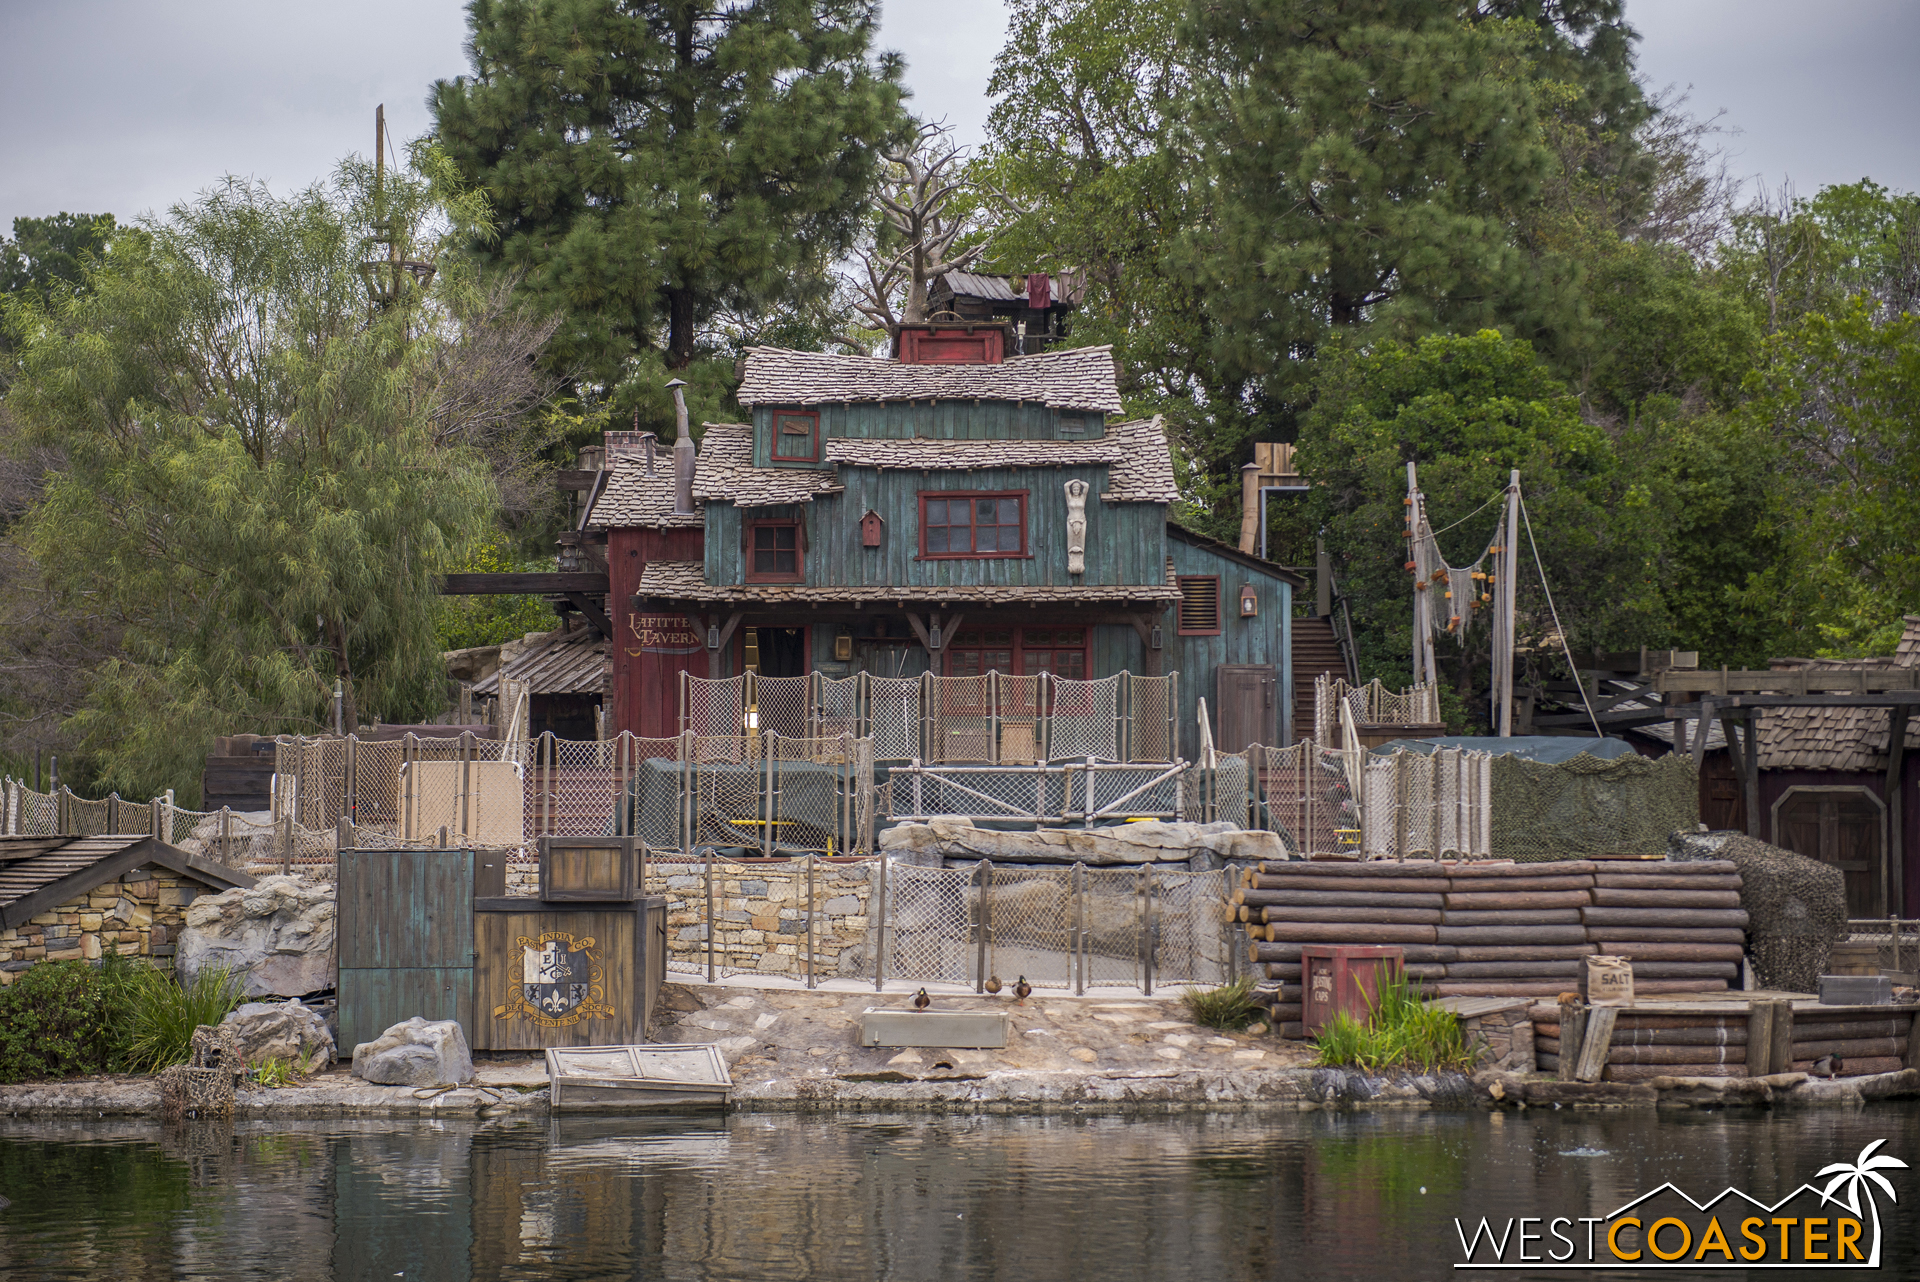 Whatever adjustments were made for the return of FANTASMIC! look well integrated.